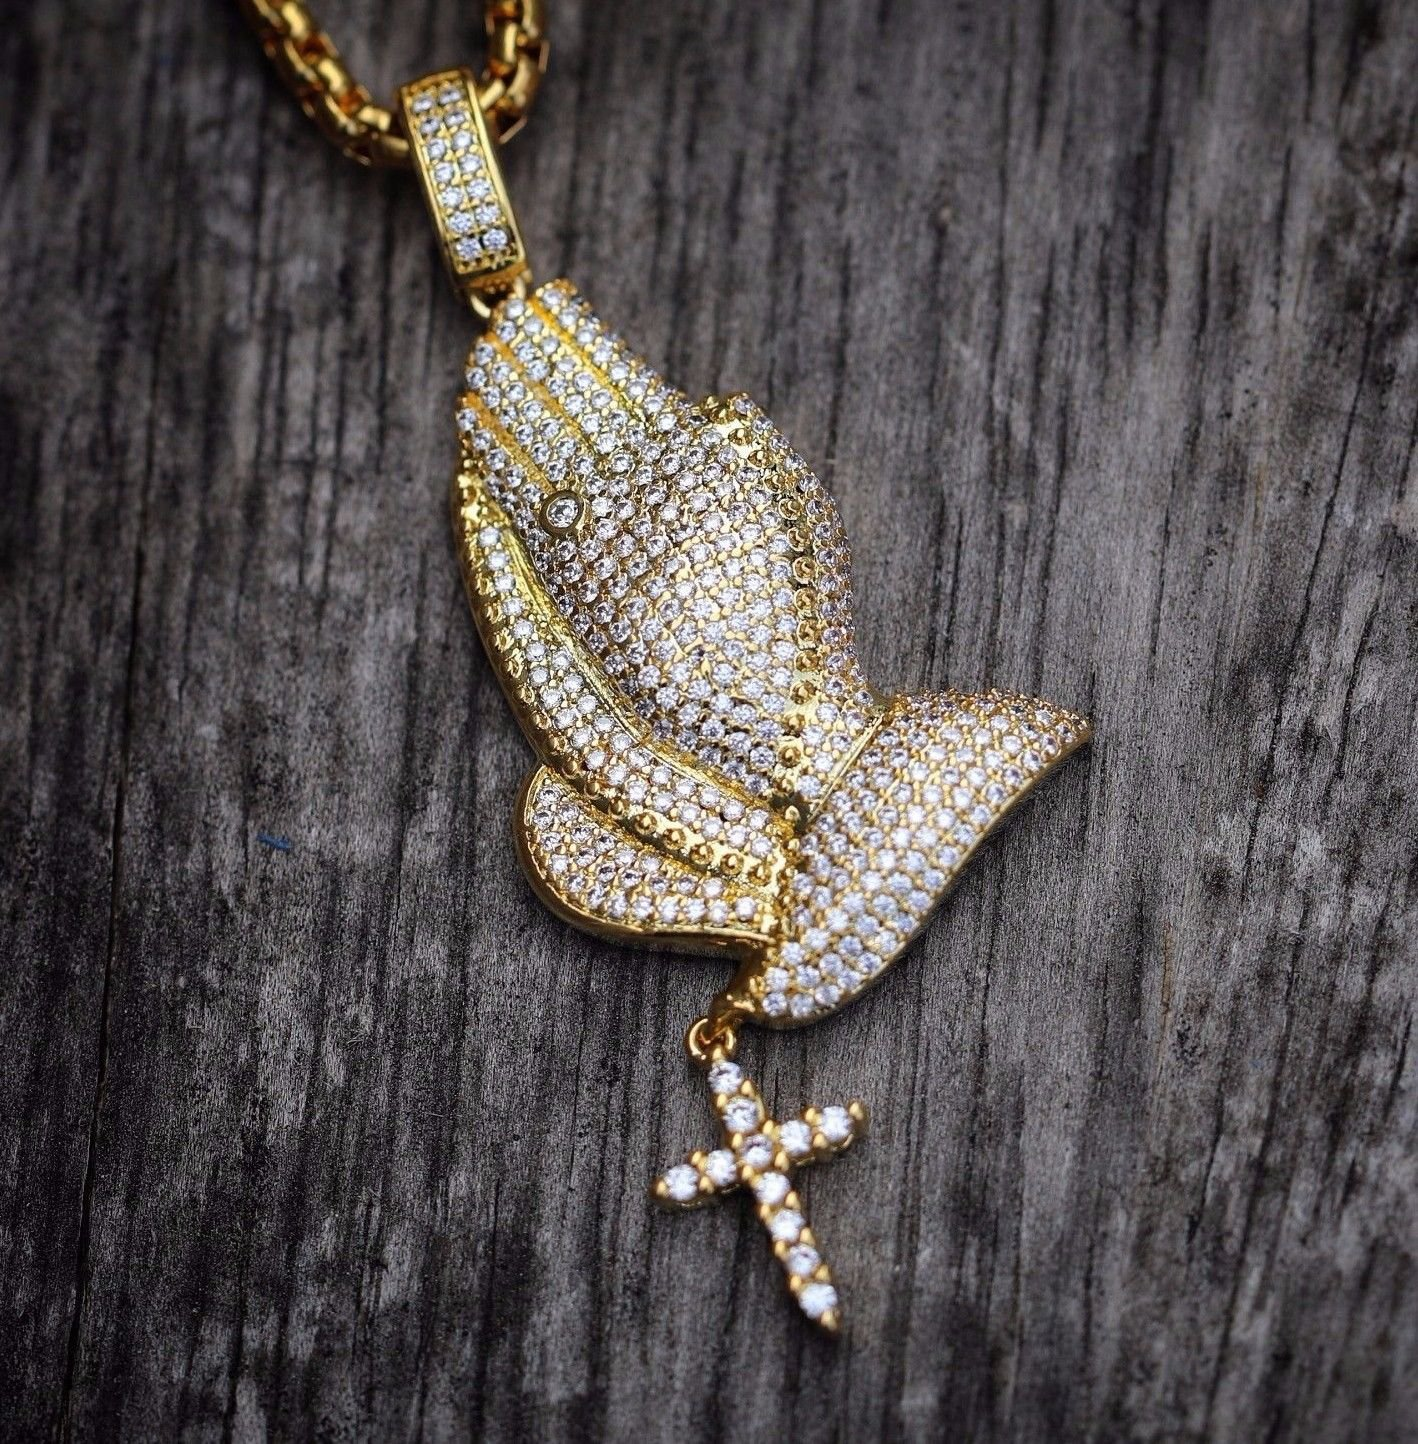 18k Gold Iced Out Praying Hands With Cross Pendant Necklace